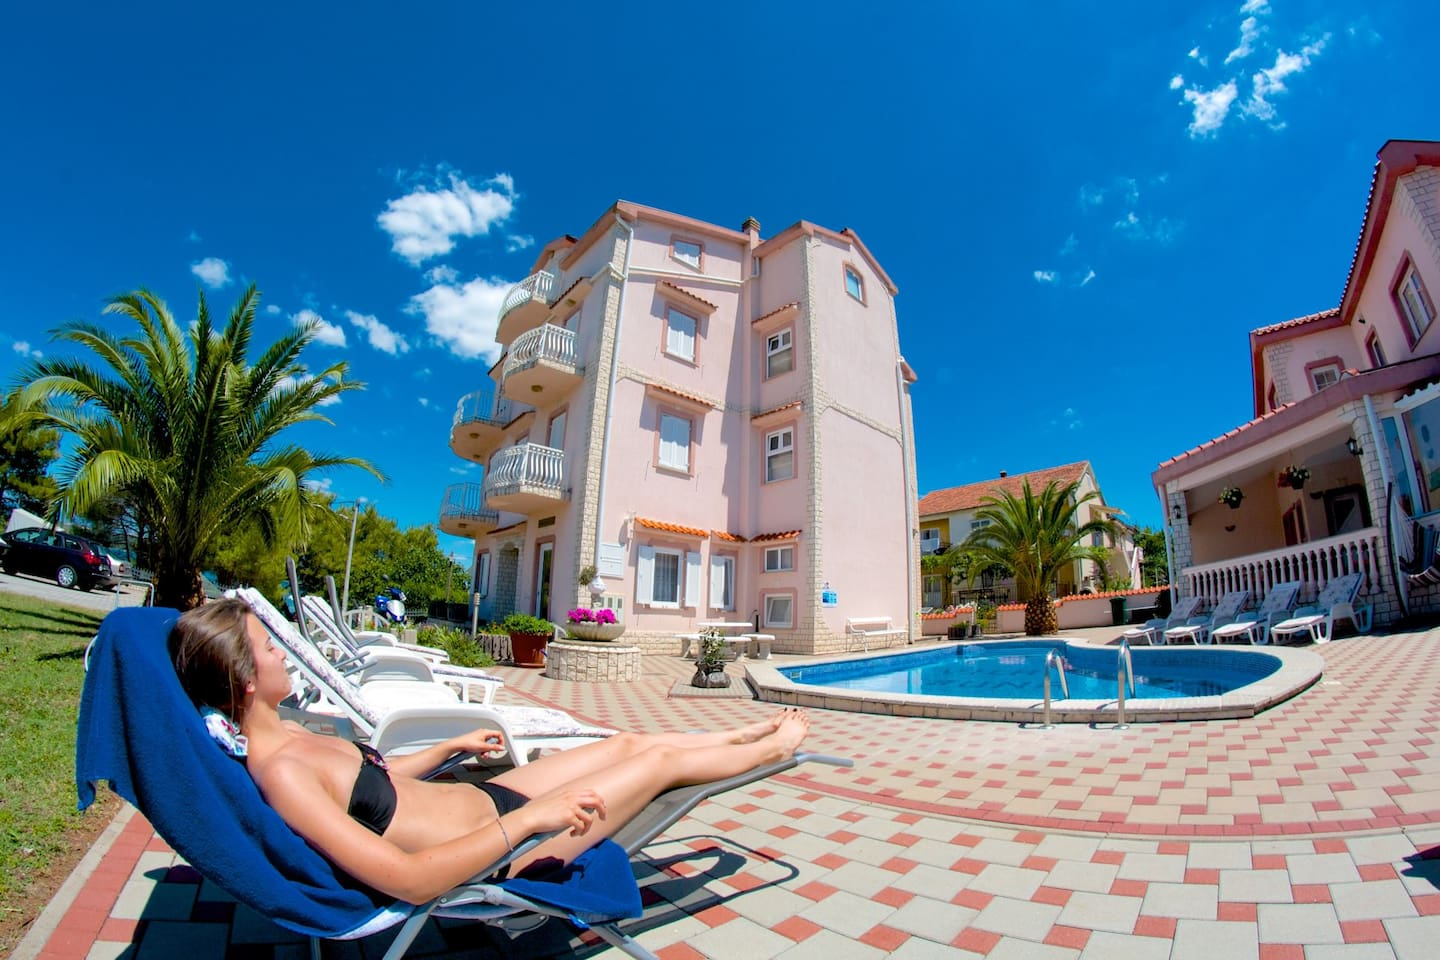 Swimming pool are and Vila Kruna and the outside terrace in the background.